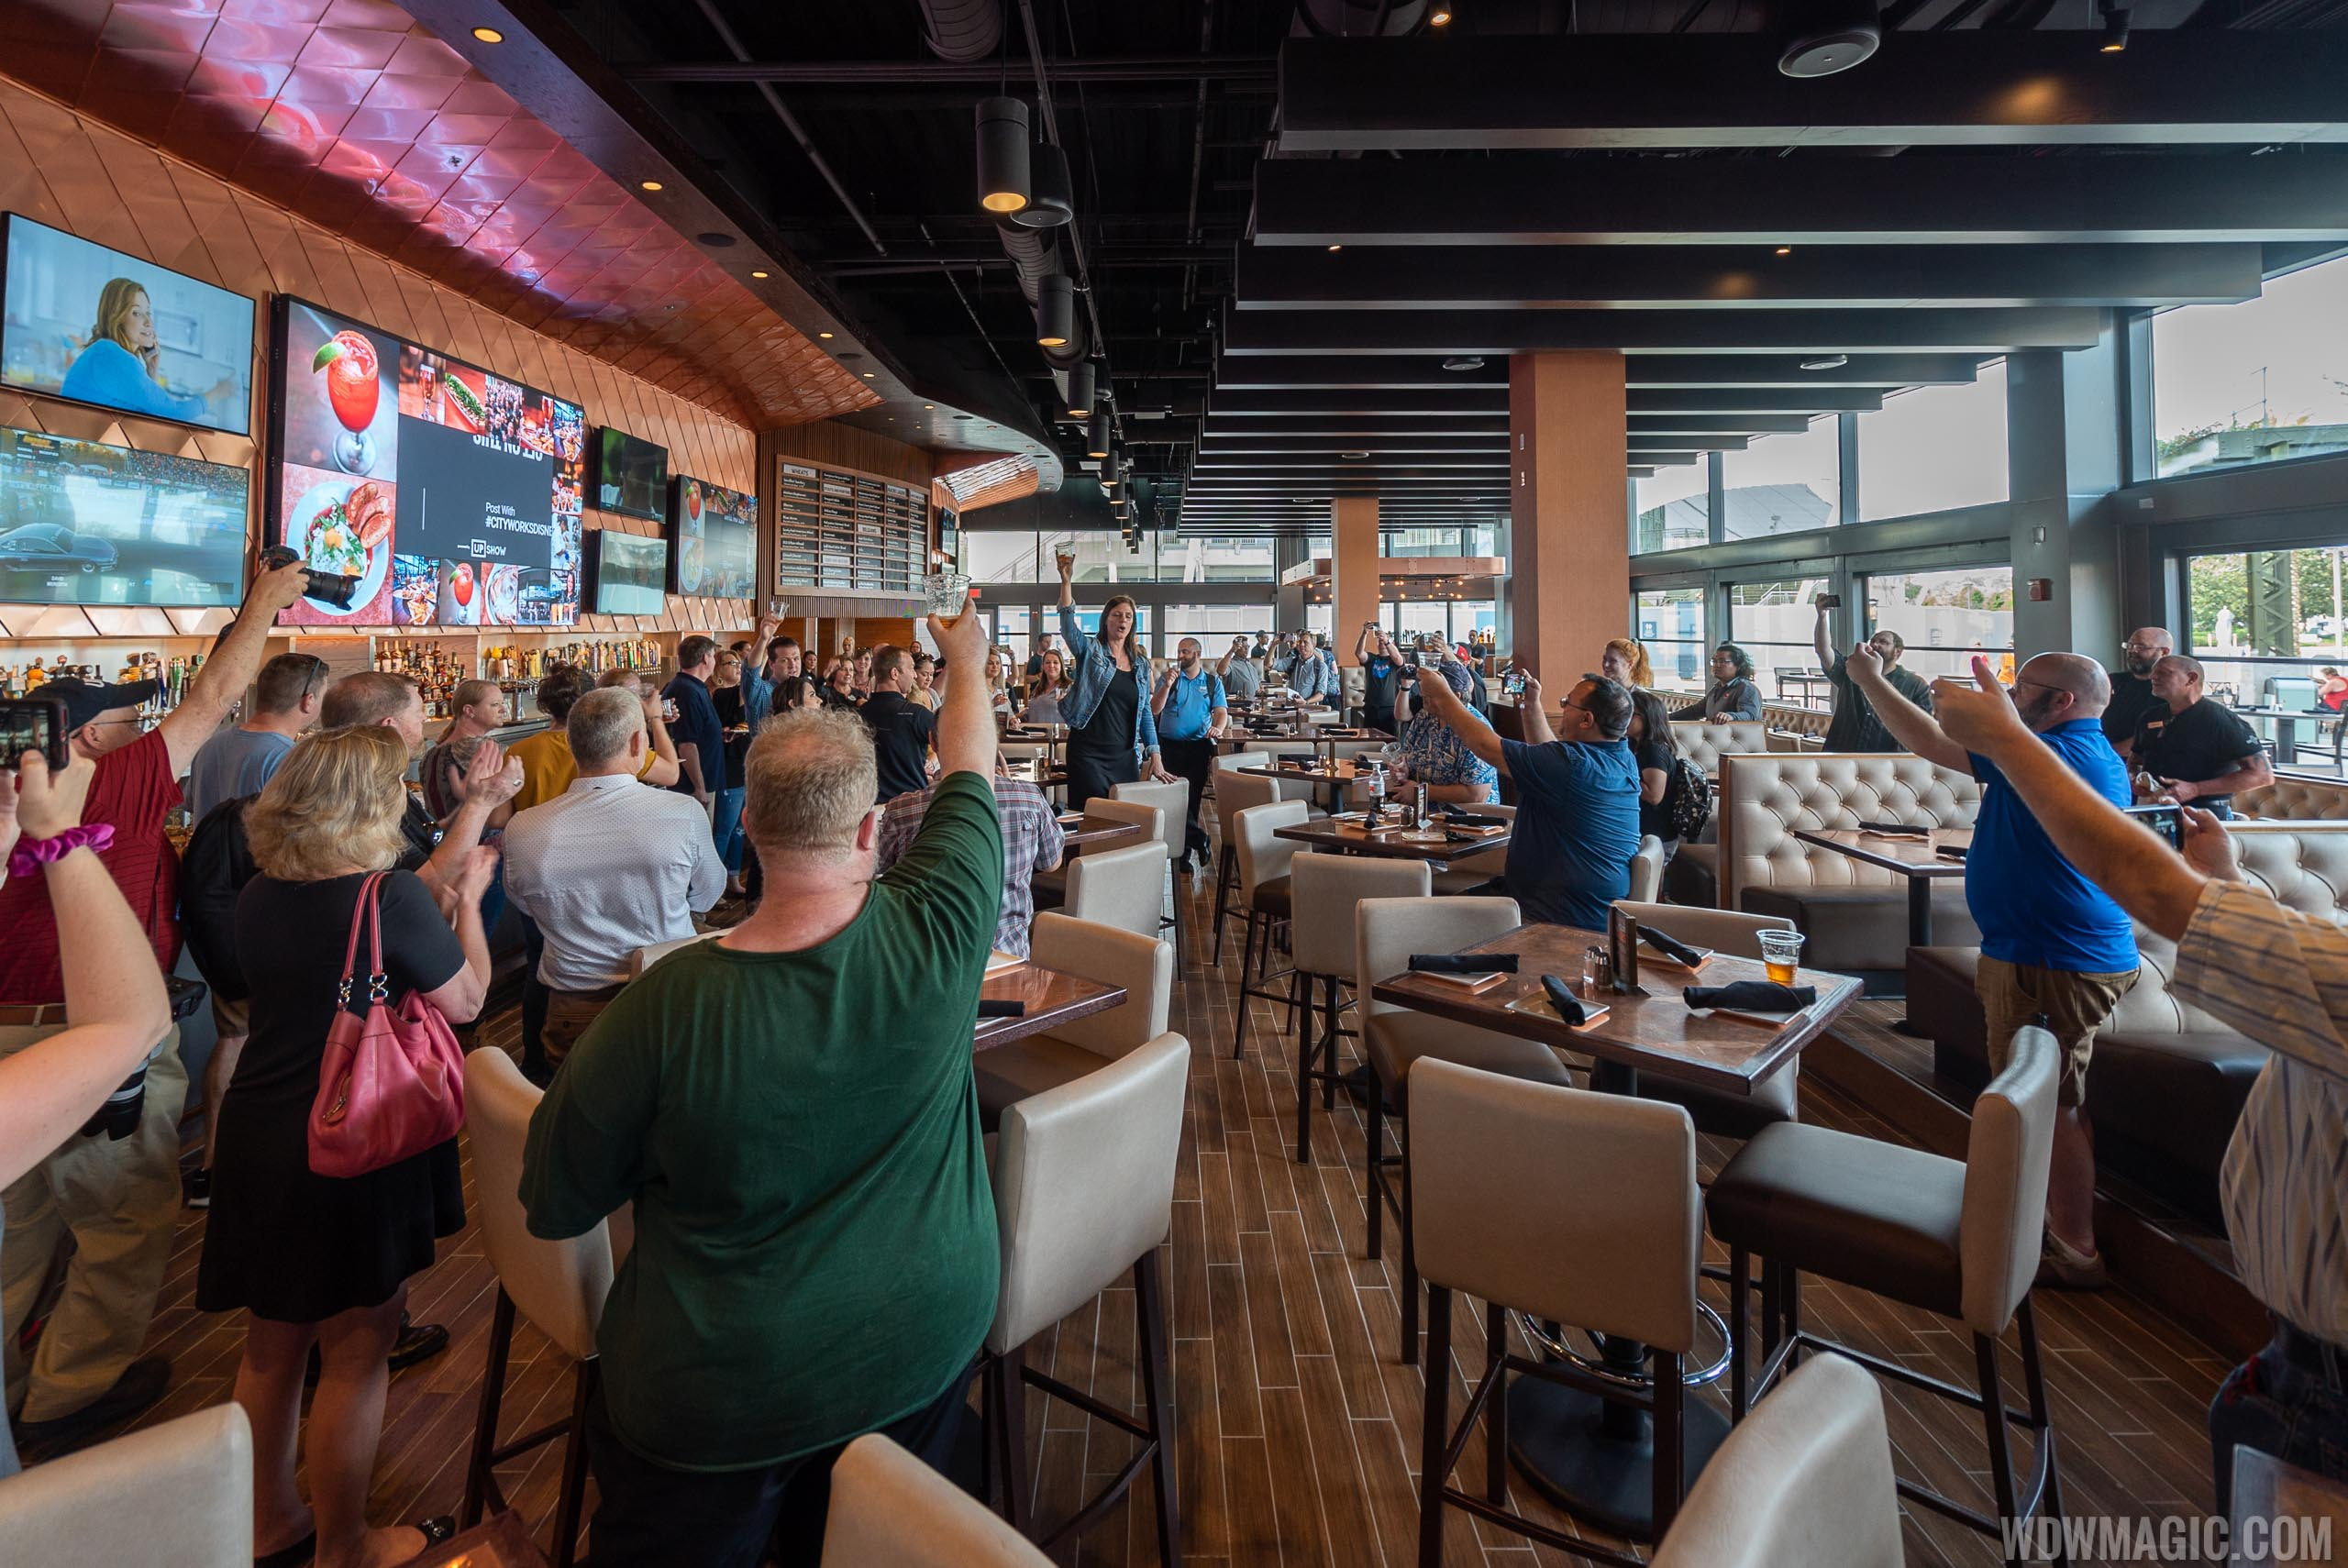 PHOTOS - First look at the new City Works Eatery and Pour House at Disney Springs